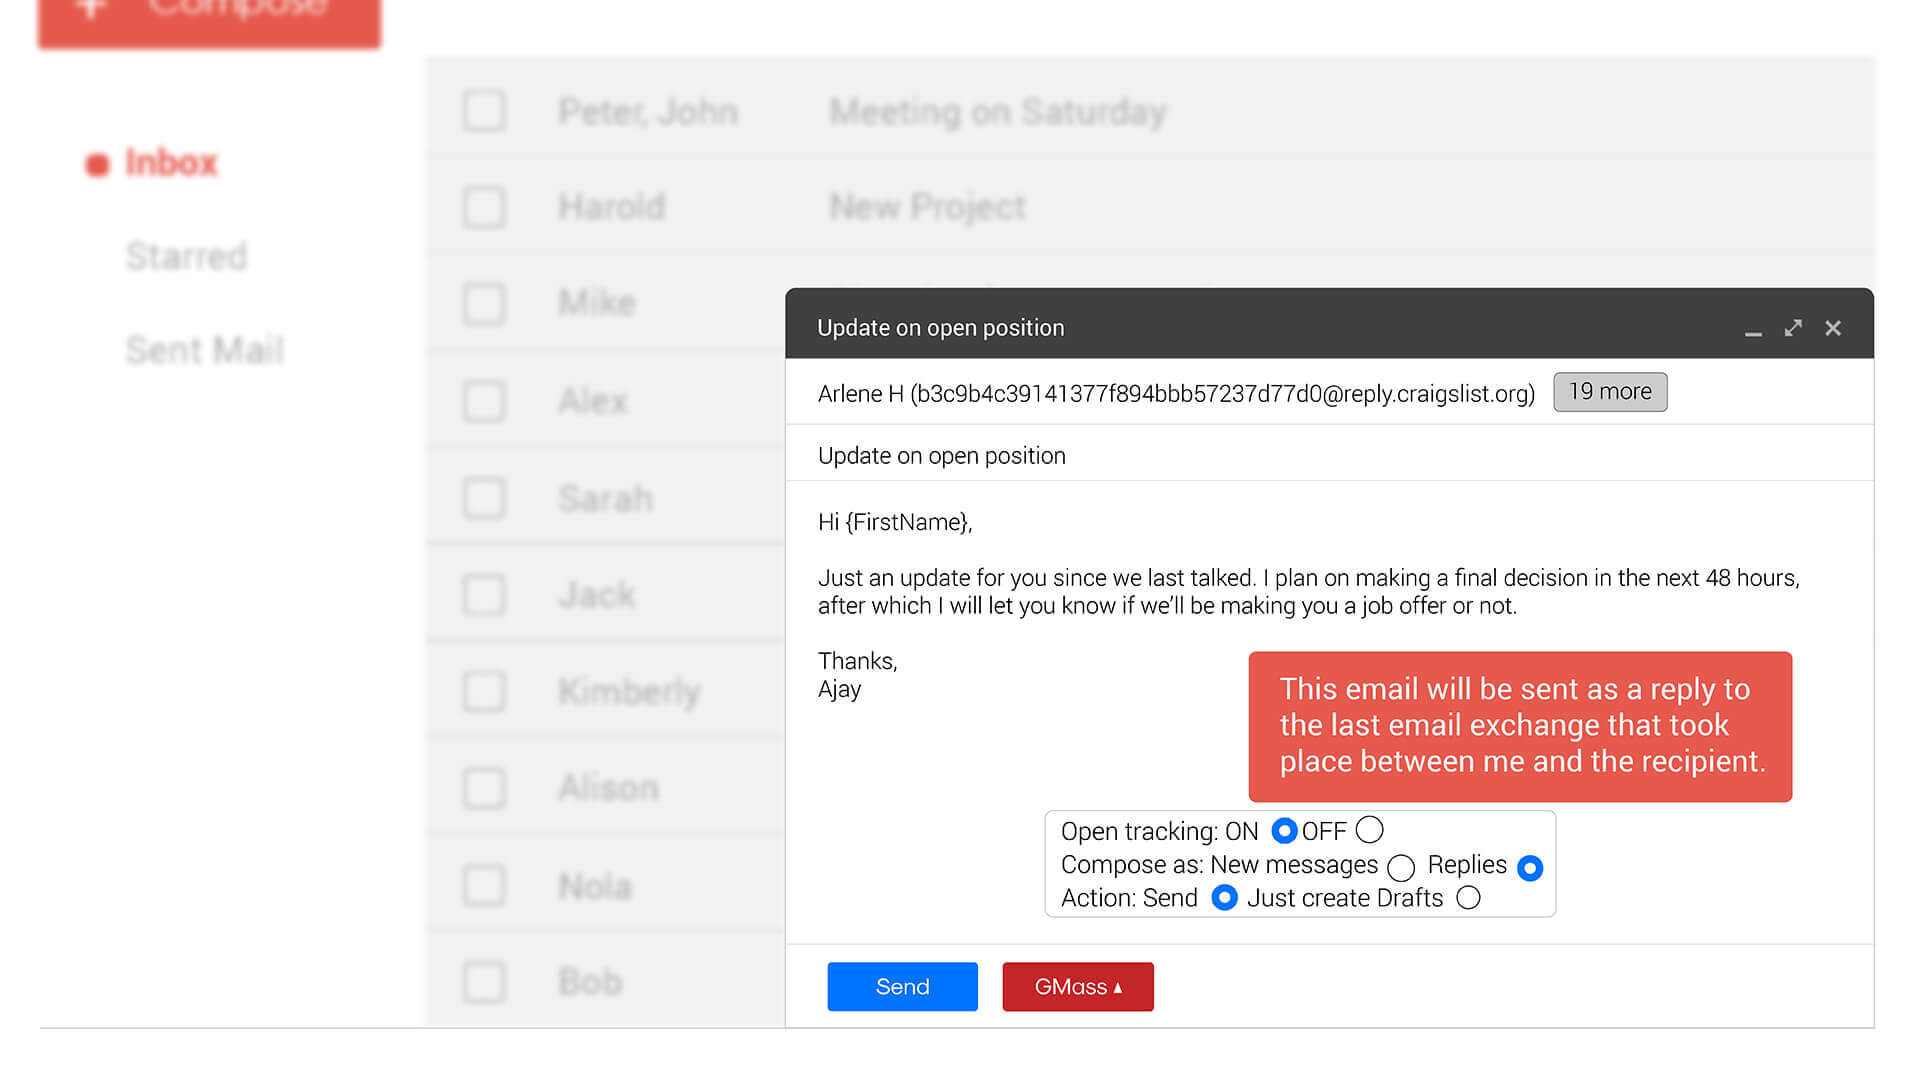 GMass: Gmail Mail Merge | Send & Schedule Mass Email